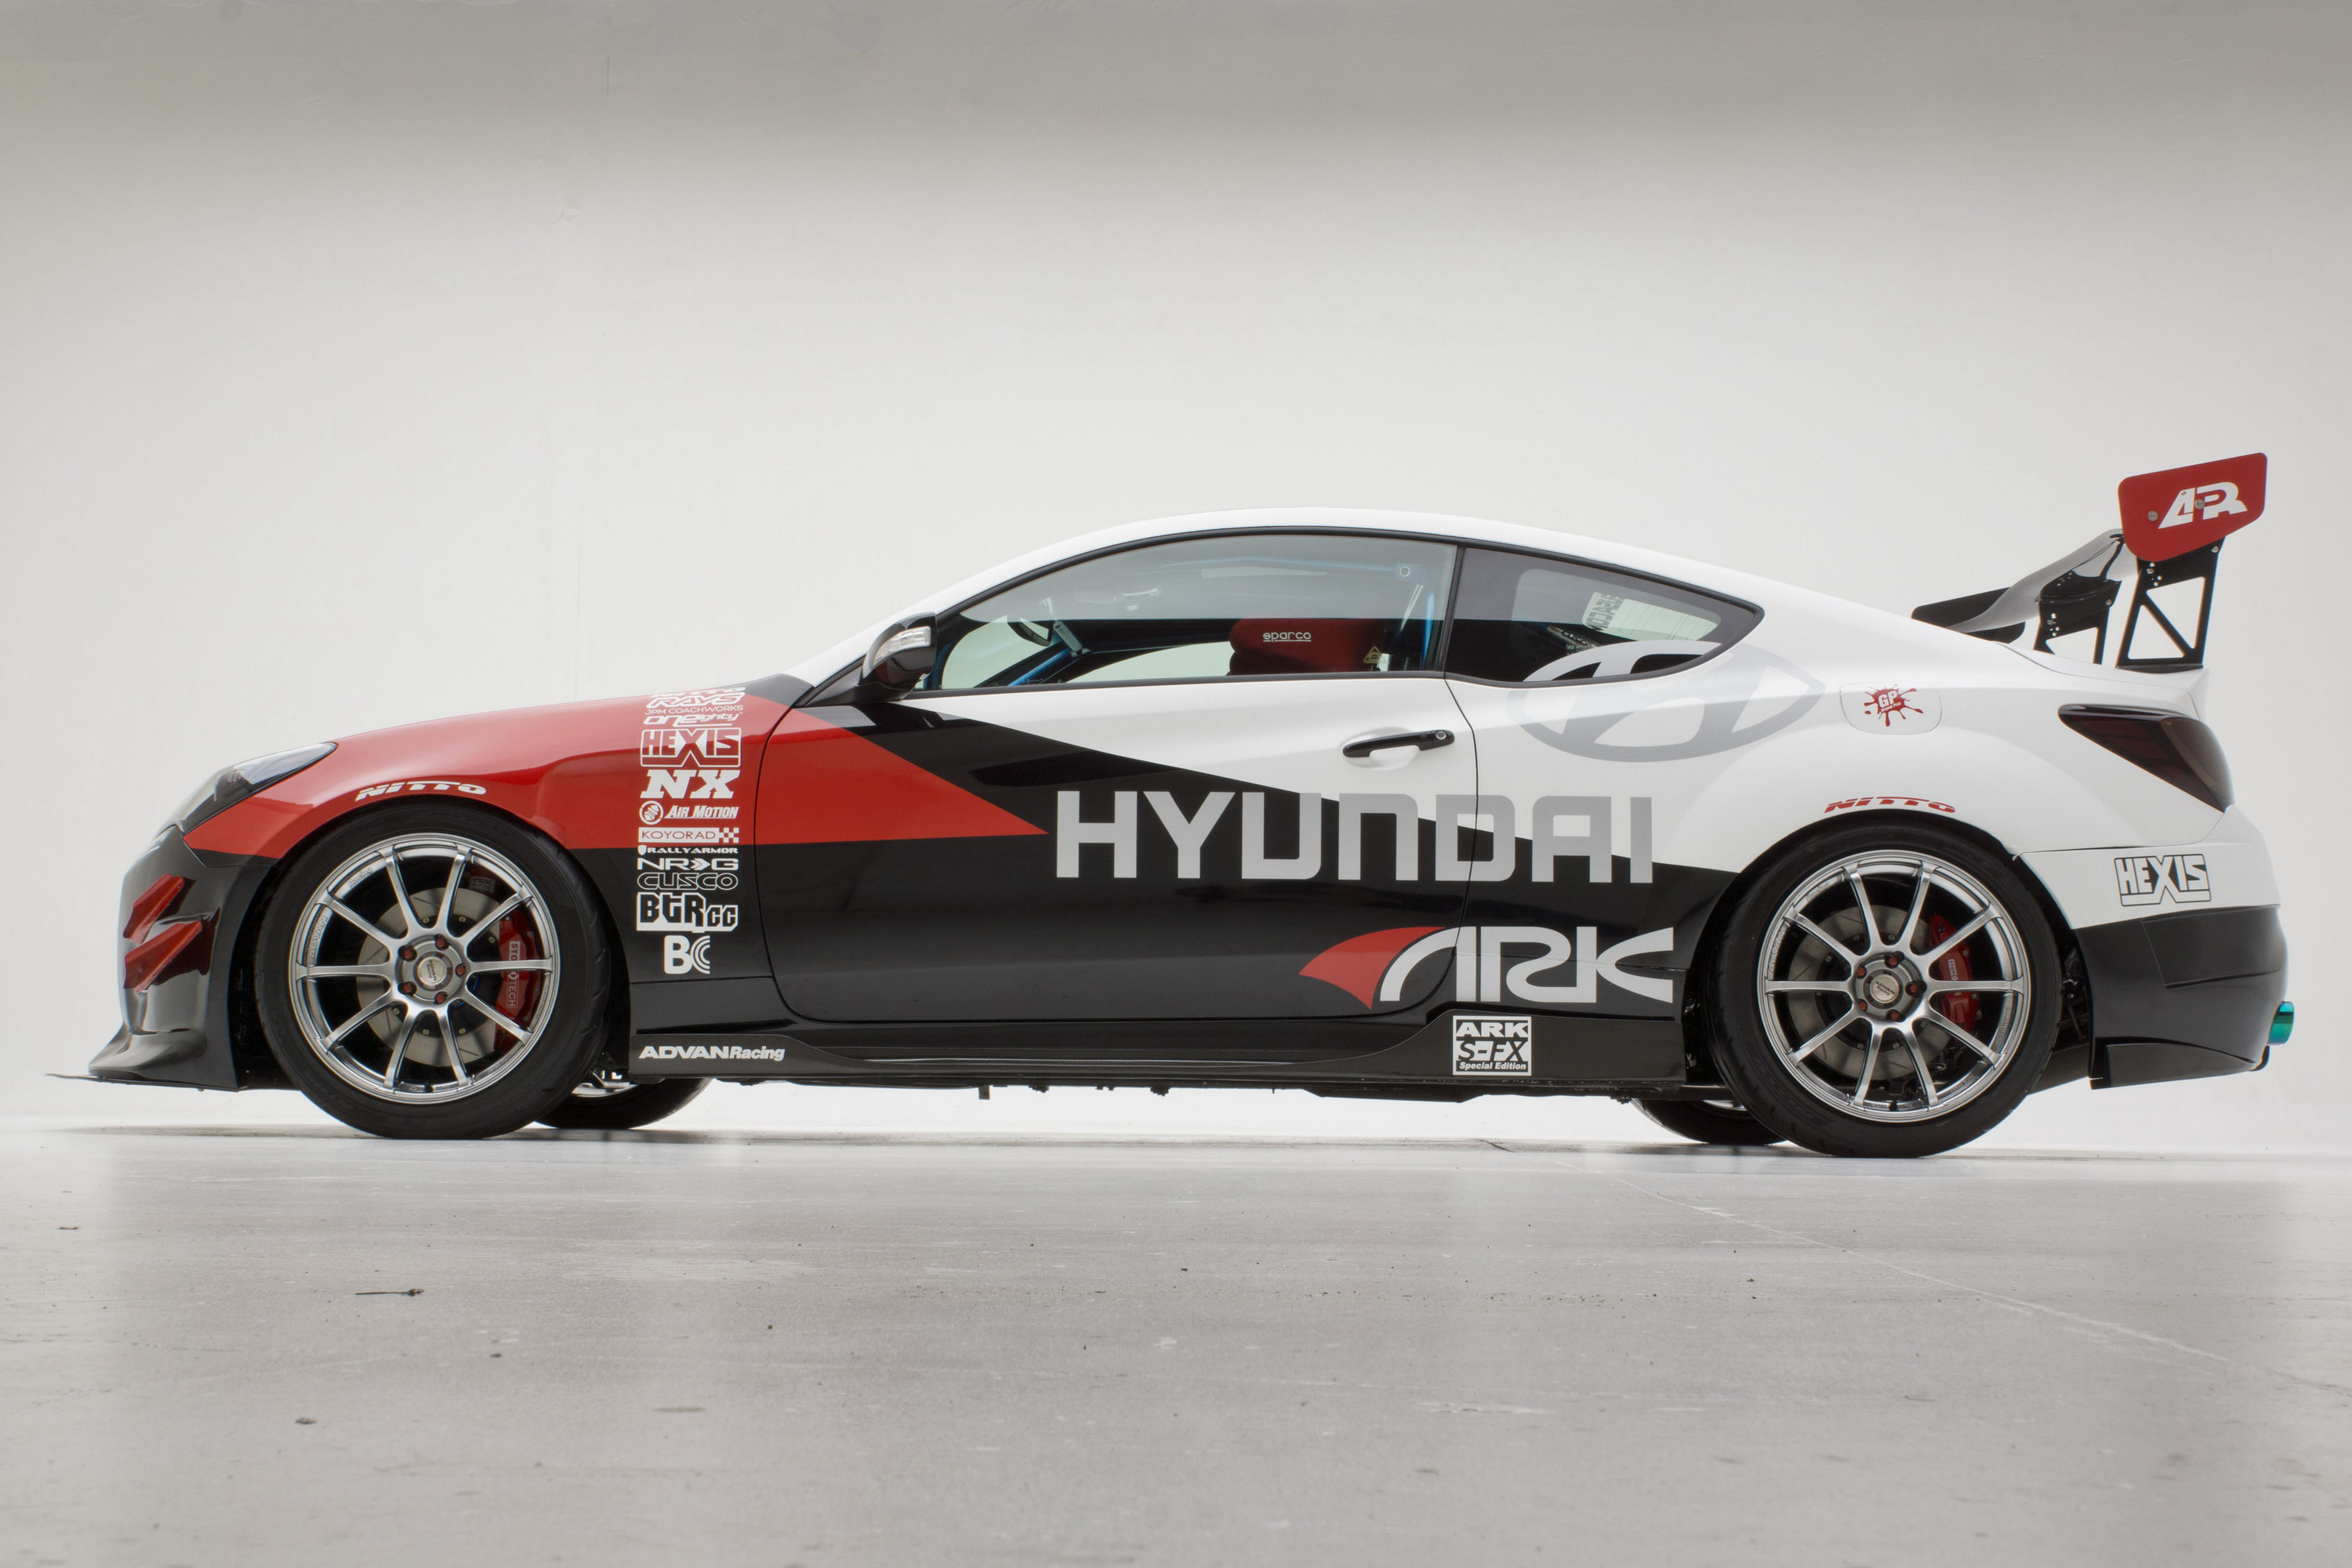 2013 Hyundai Genesis Coupe R-Spec By ARK Gallery 480097